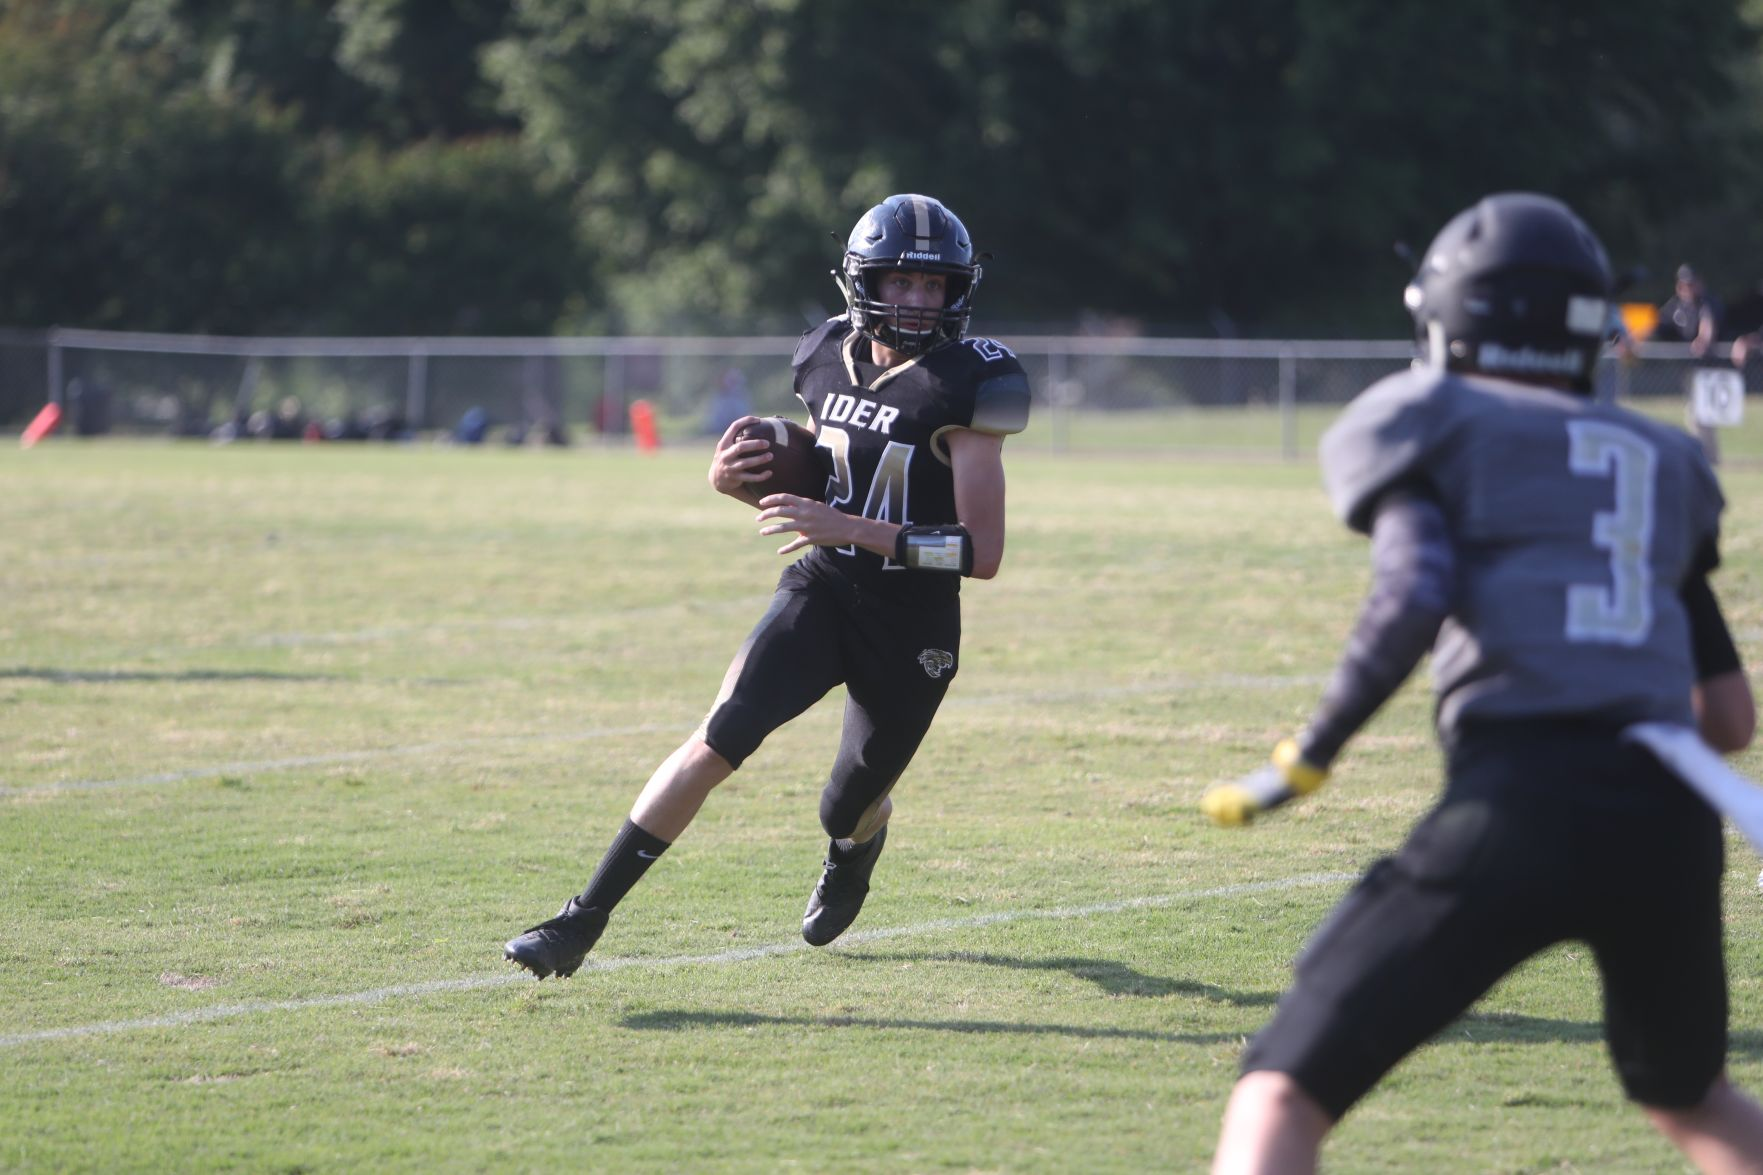 Hornets, Bulldogs win on last day of county spring football jamboree